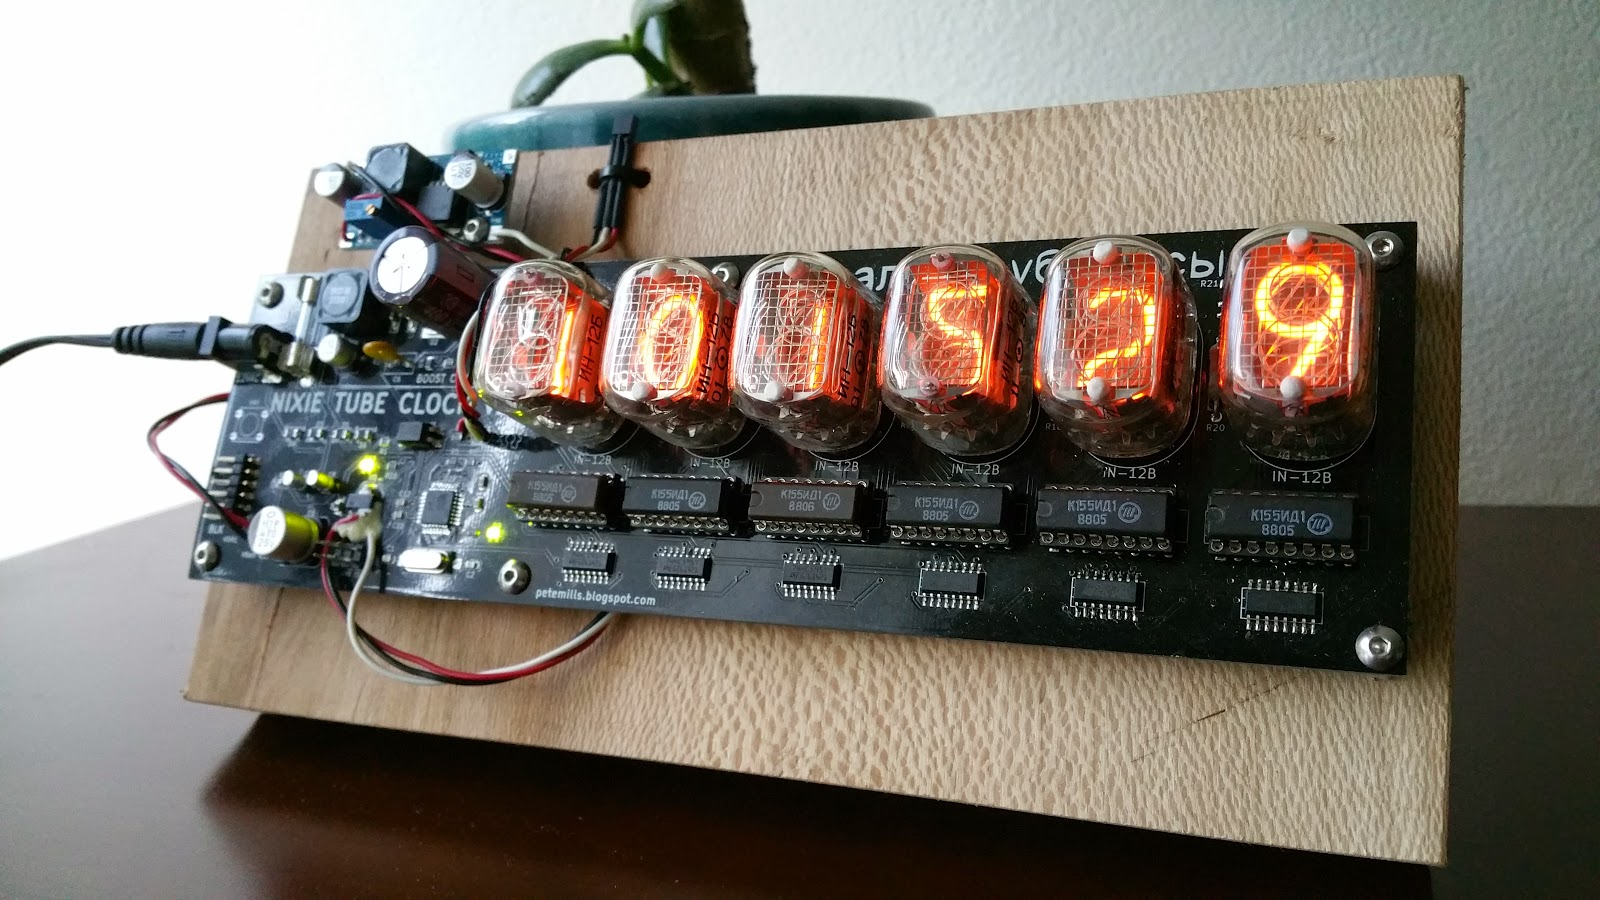 Nixie Tube Clock Schematic Of My 6 Digit Here Are Some Photos Many Fuses Gave Indication To A Problem The Solution Is Disconnect Pin From Pwm Timer In Software And Then Set Output Low